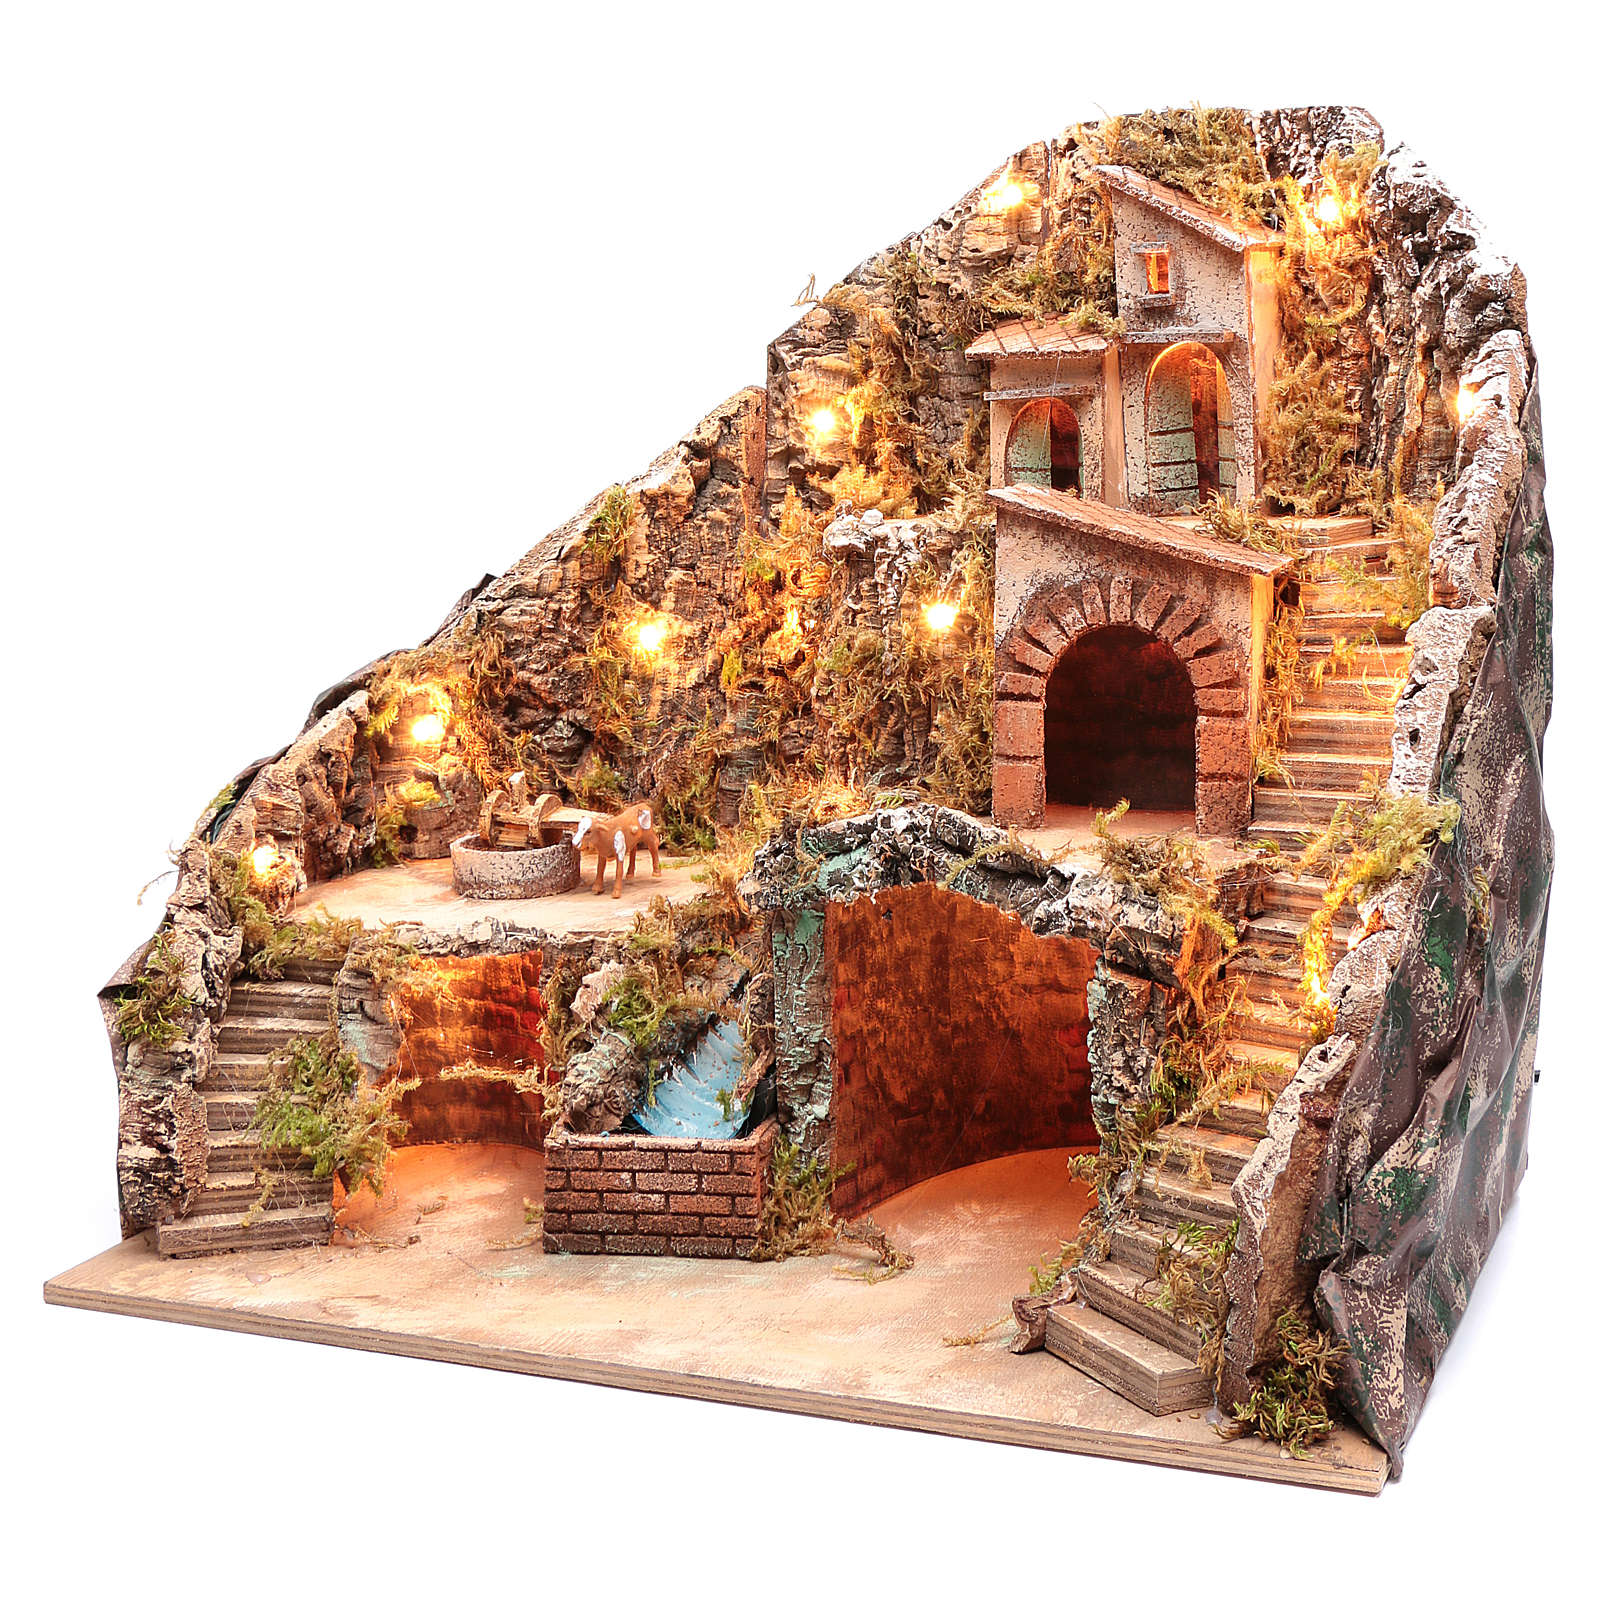 Neapolitan nativity scene setting with stream, cow and bell 50x55x45 cm 4